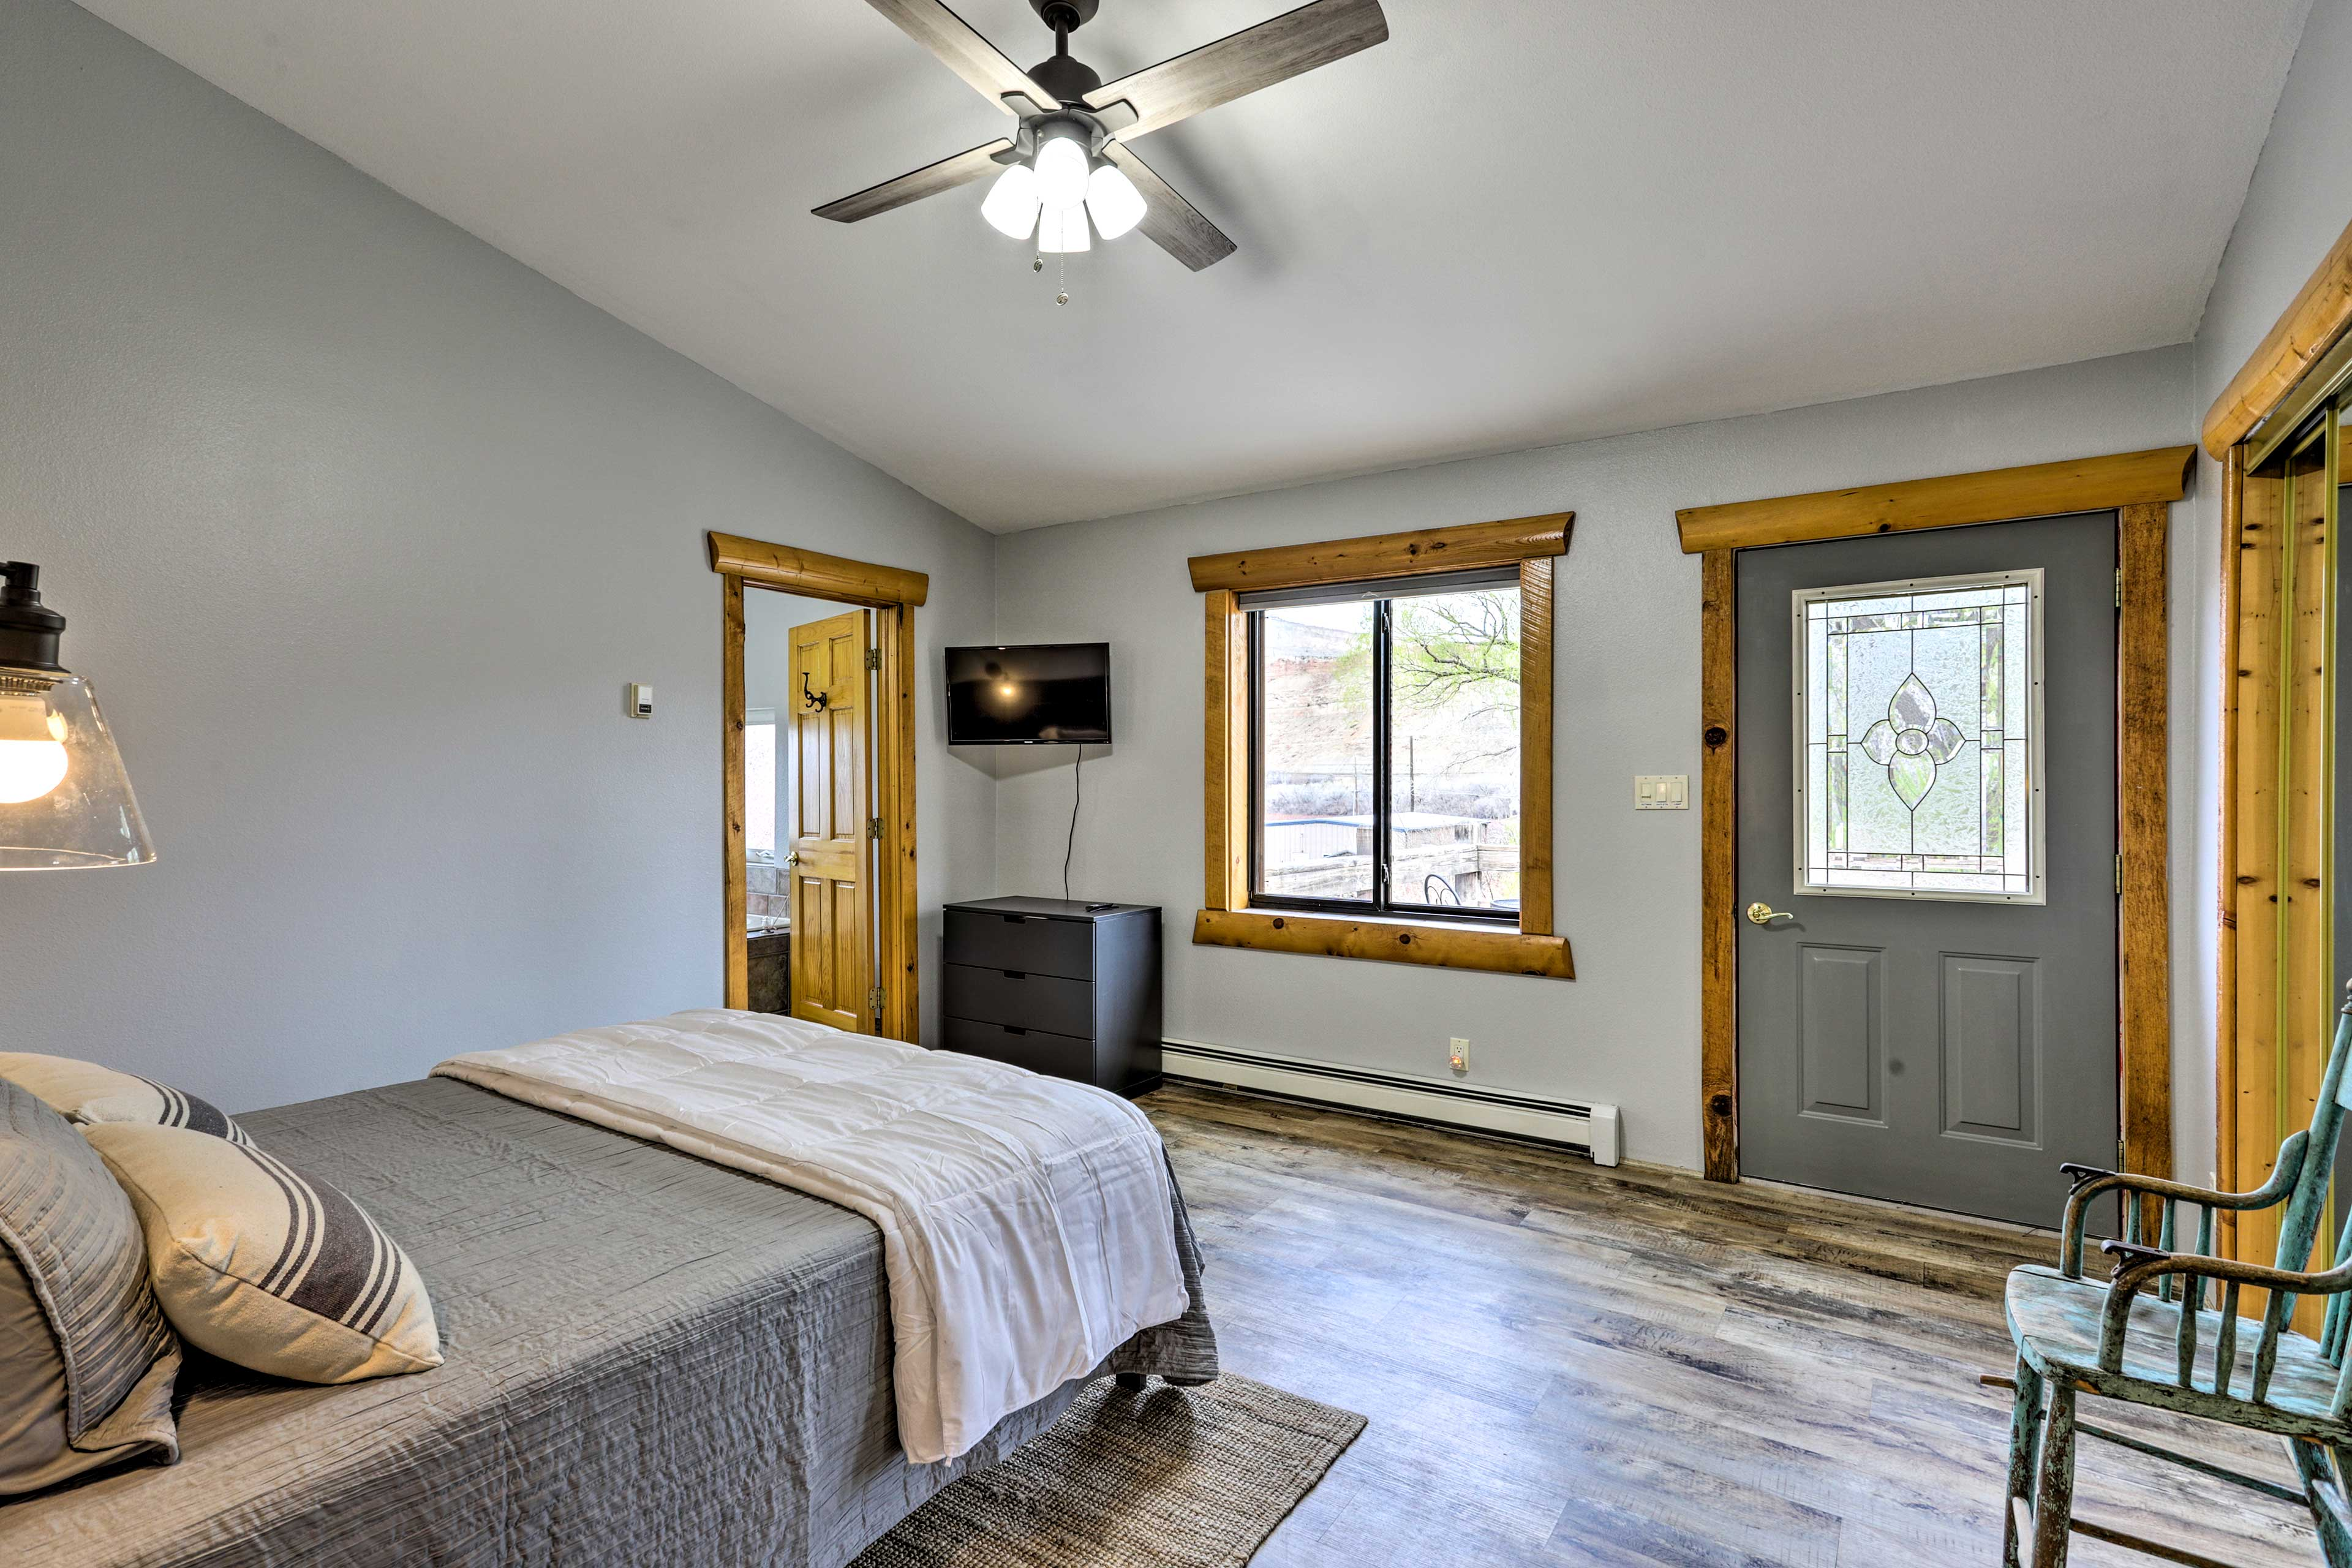 Claim the master bedroom for your stay.